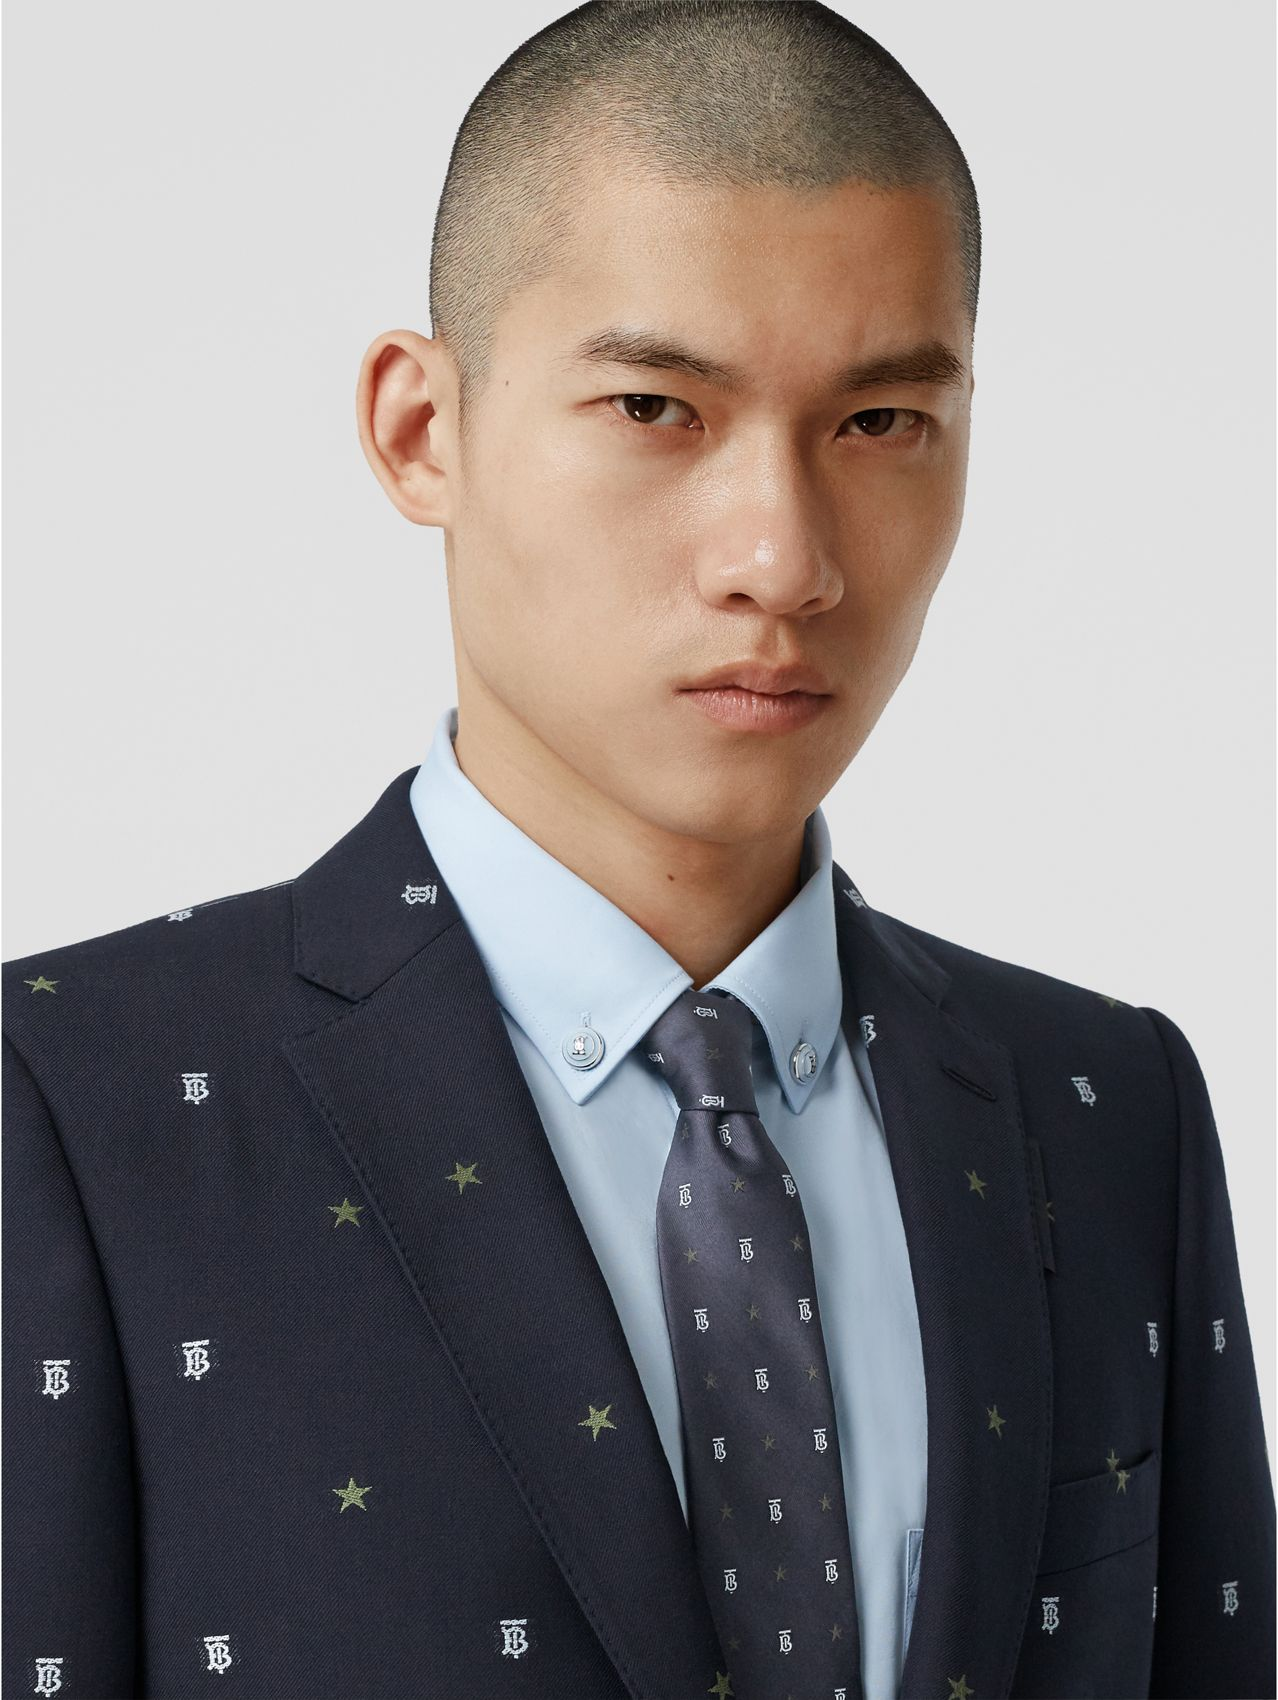 Classic Cut Monogram and Star Motif Silk Tie in Dark Navy